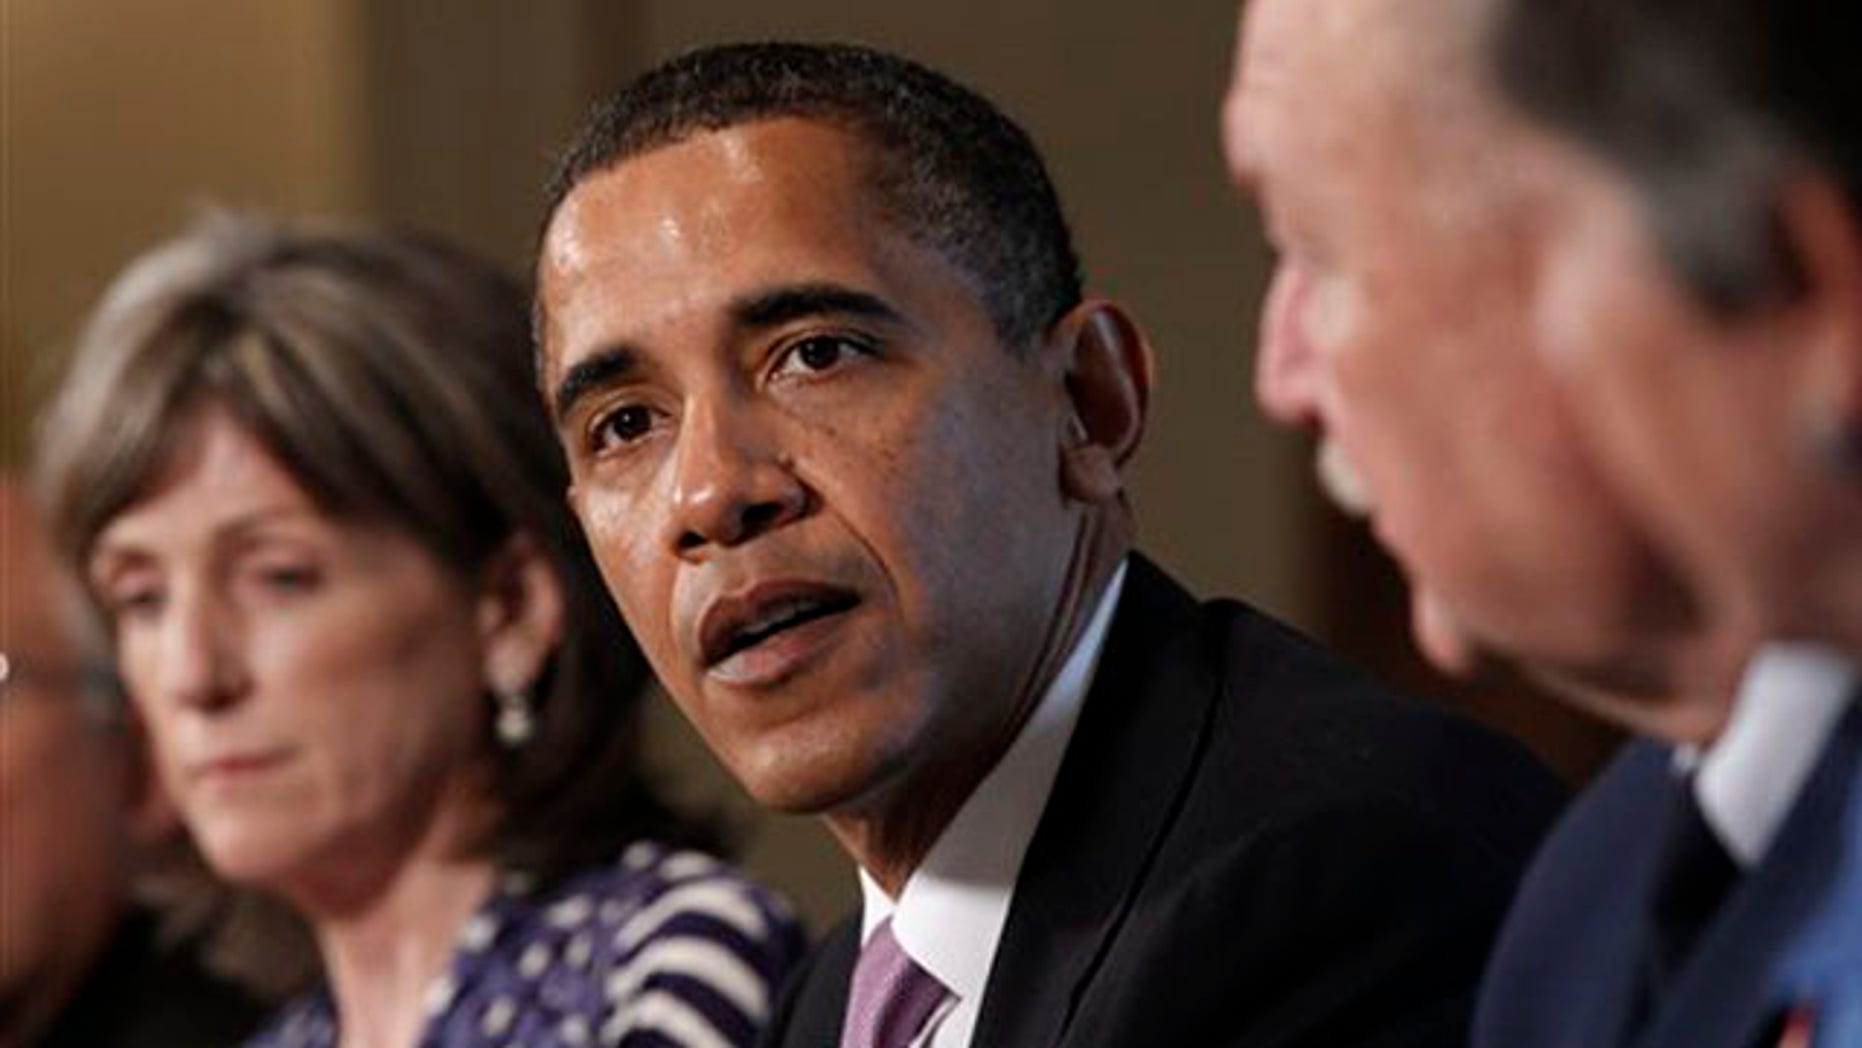 President Obama meets with members of his Cabinet to discuss the response to the BP oil spill June 7 in the White House. (AP Photo)